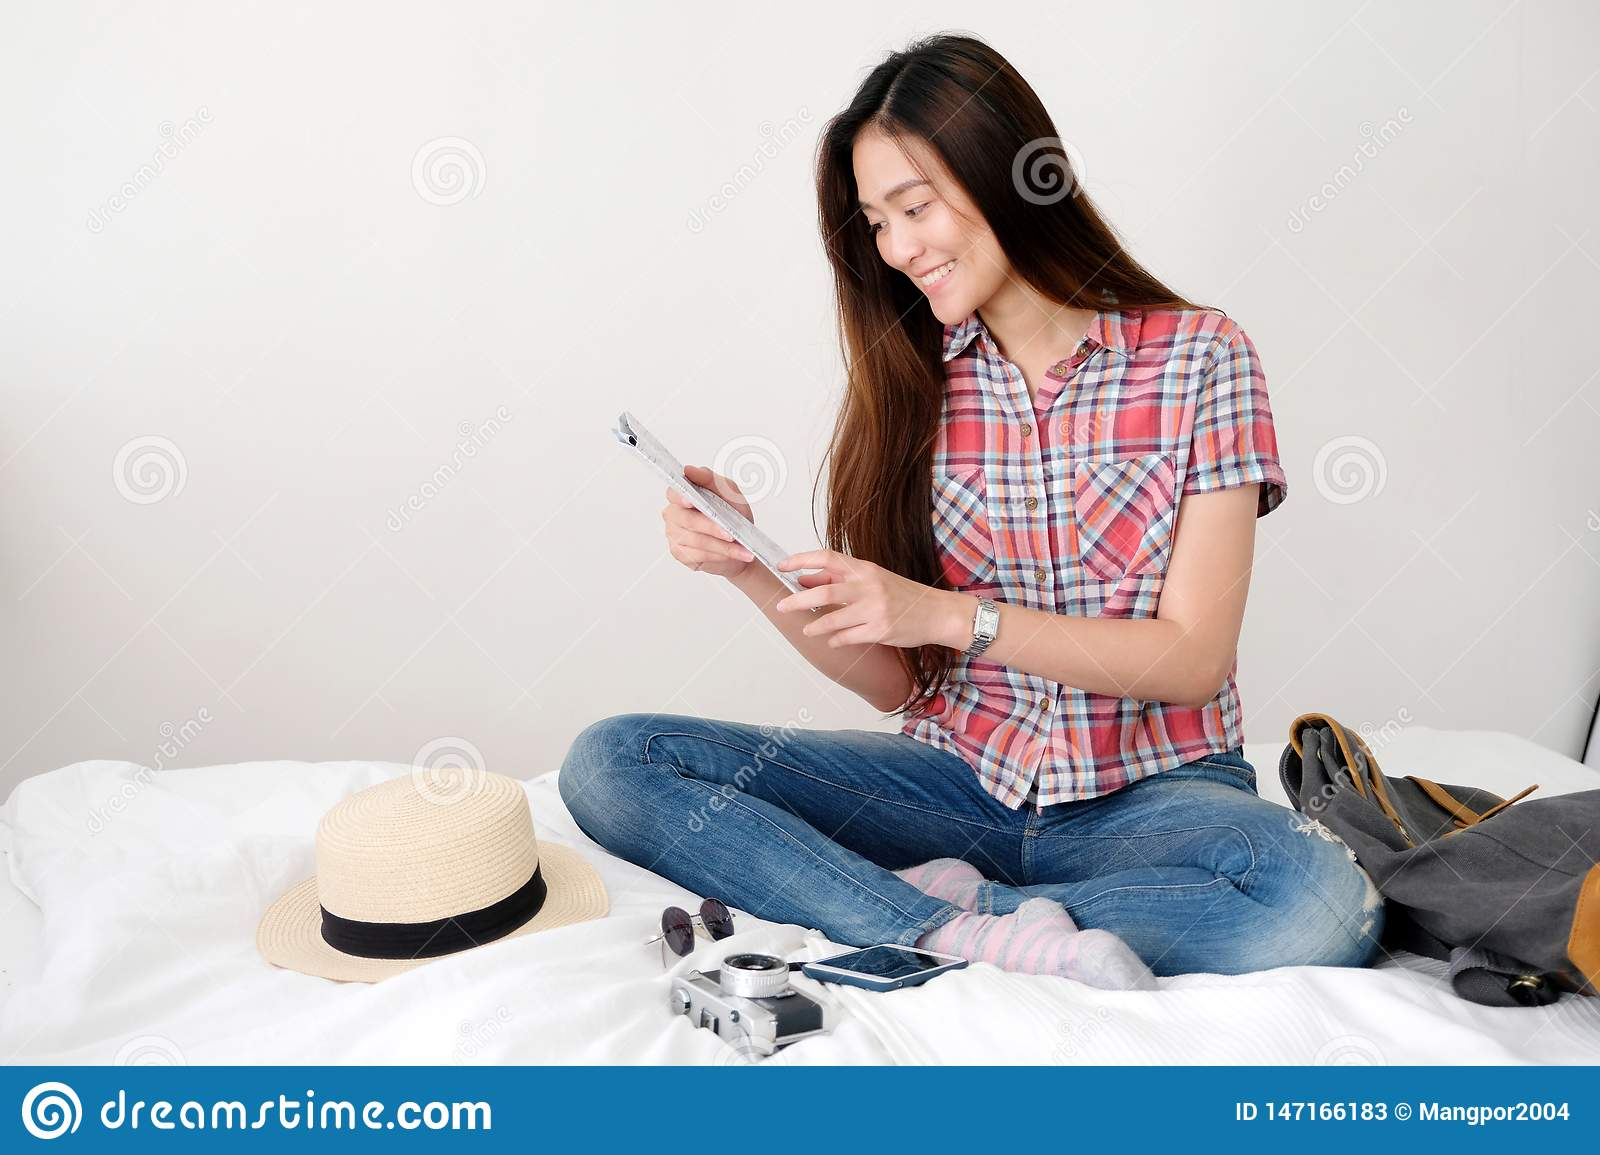 Young asian woman traveler holding map while sitting on bed with hat, camera, eyeglasses, bag and smartphone with happiness